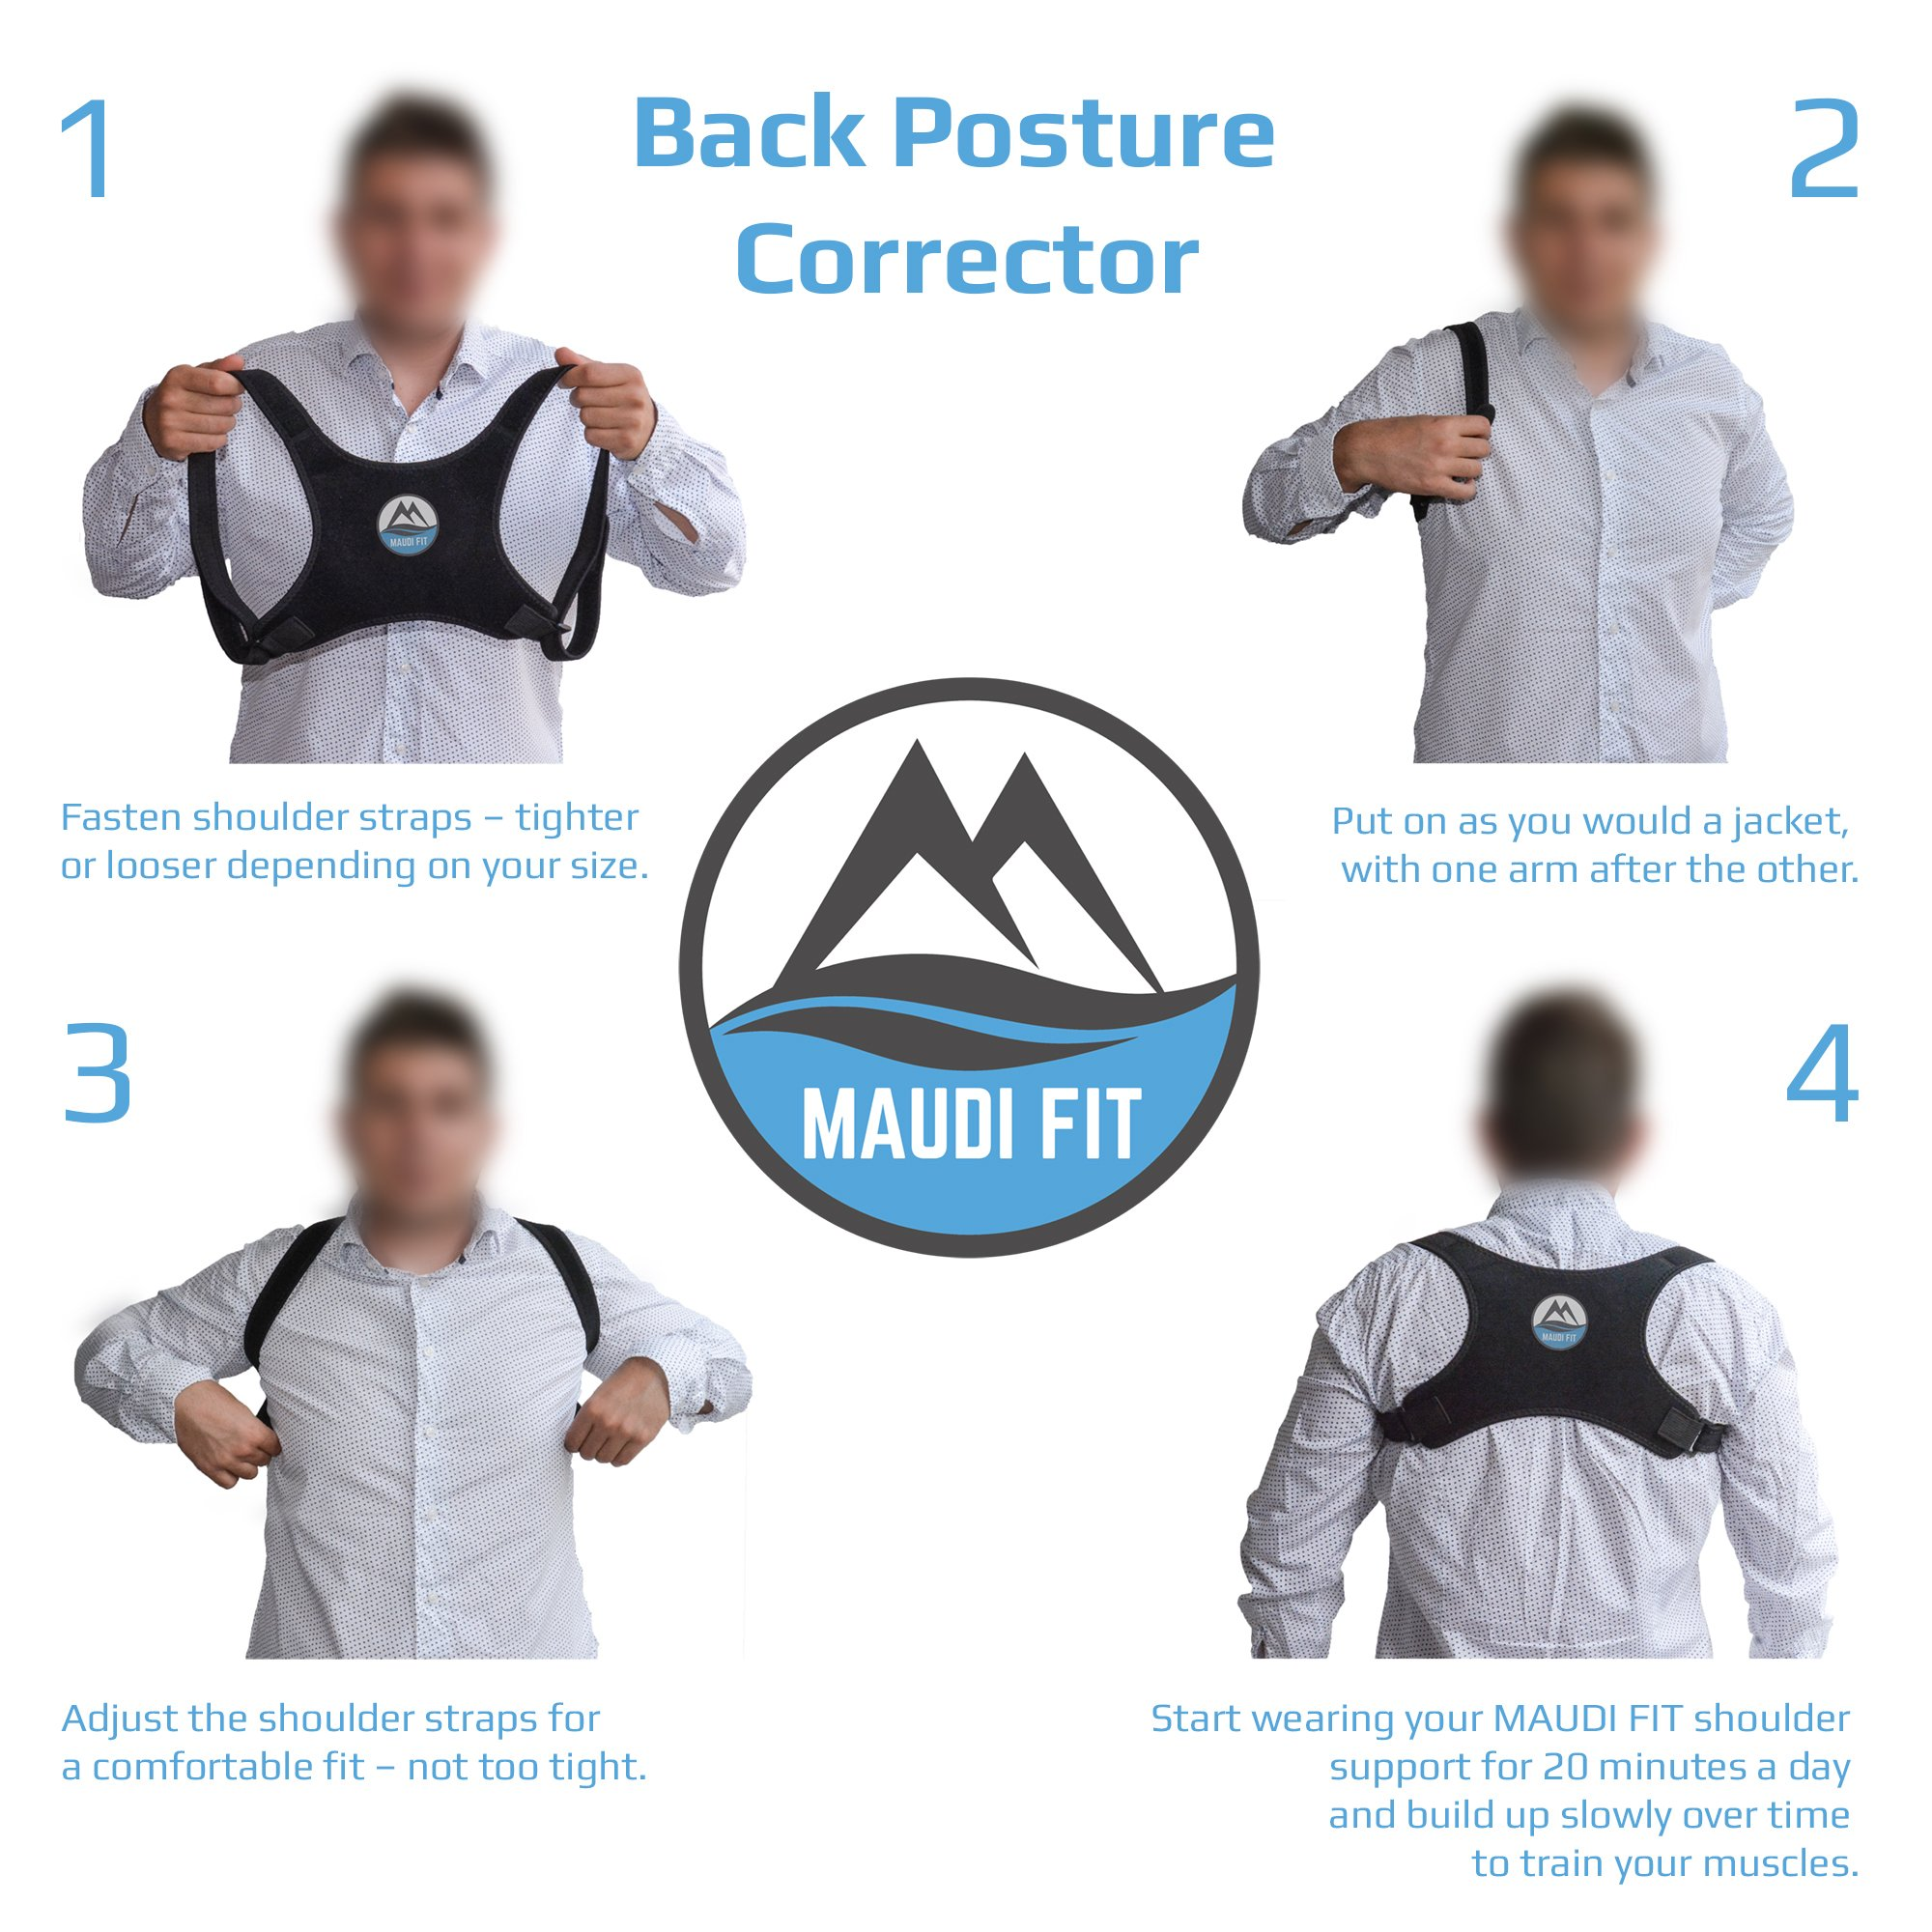 Back Posture Corrector for Women Men MAUDI FIT Back Pain Relief Posture Brace Support for Slouching & Hunching Upper Back Shoulder Correction Free Resistance Band for Stretching (Back Corrector)